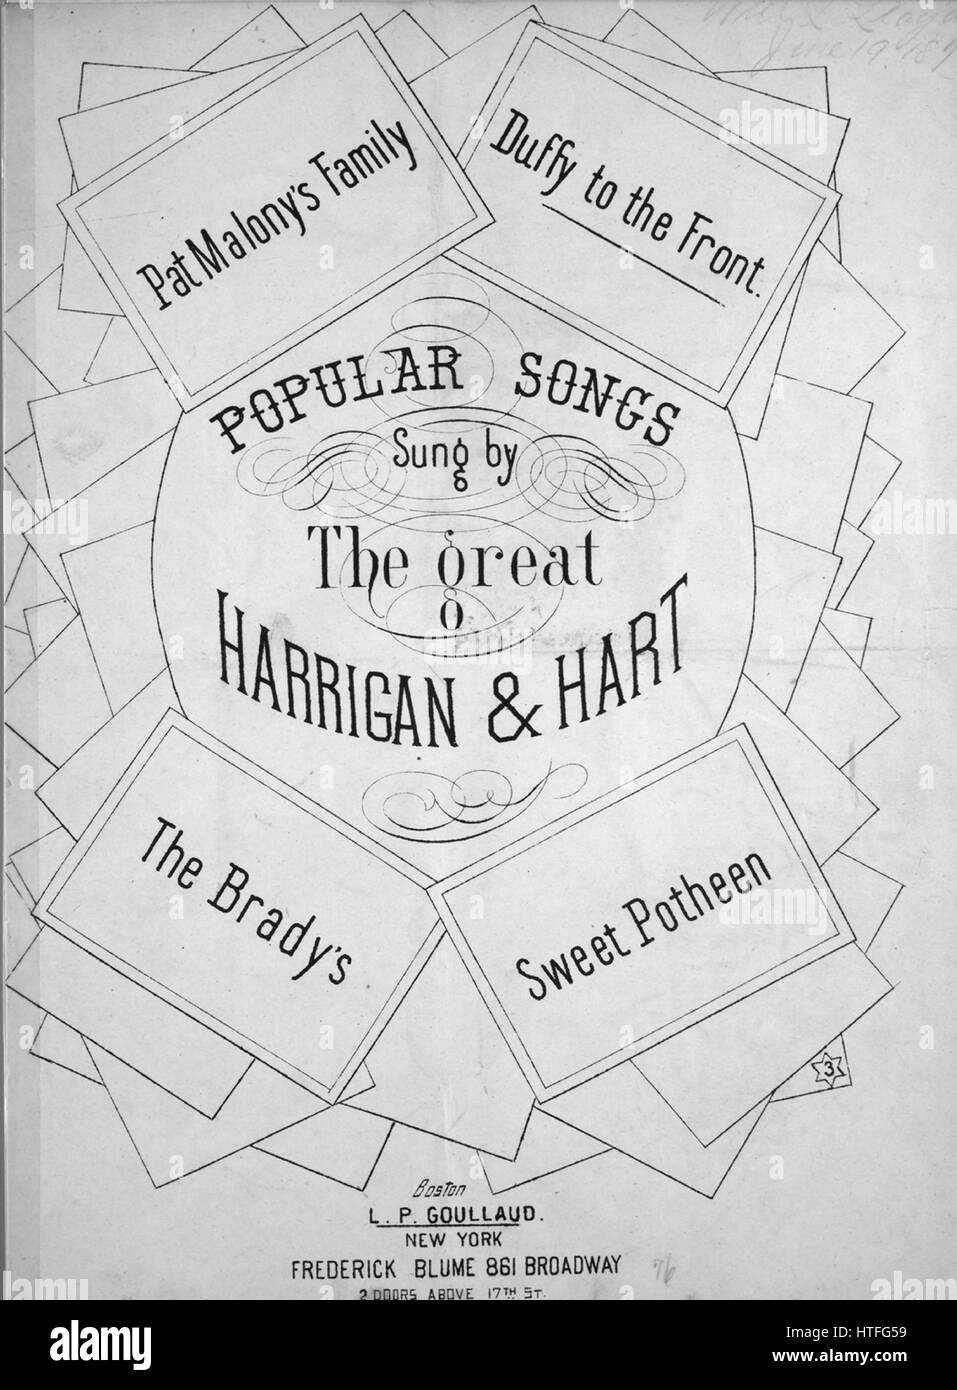 Old Sheet Music Front Cover Stock Photos Back Gt Gallery For Foxtrot Dance Steps Diagram Image Of The Song Popular Songs Sung By Great Harrigan And